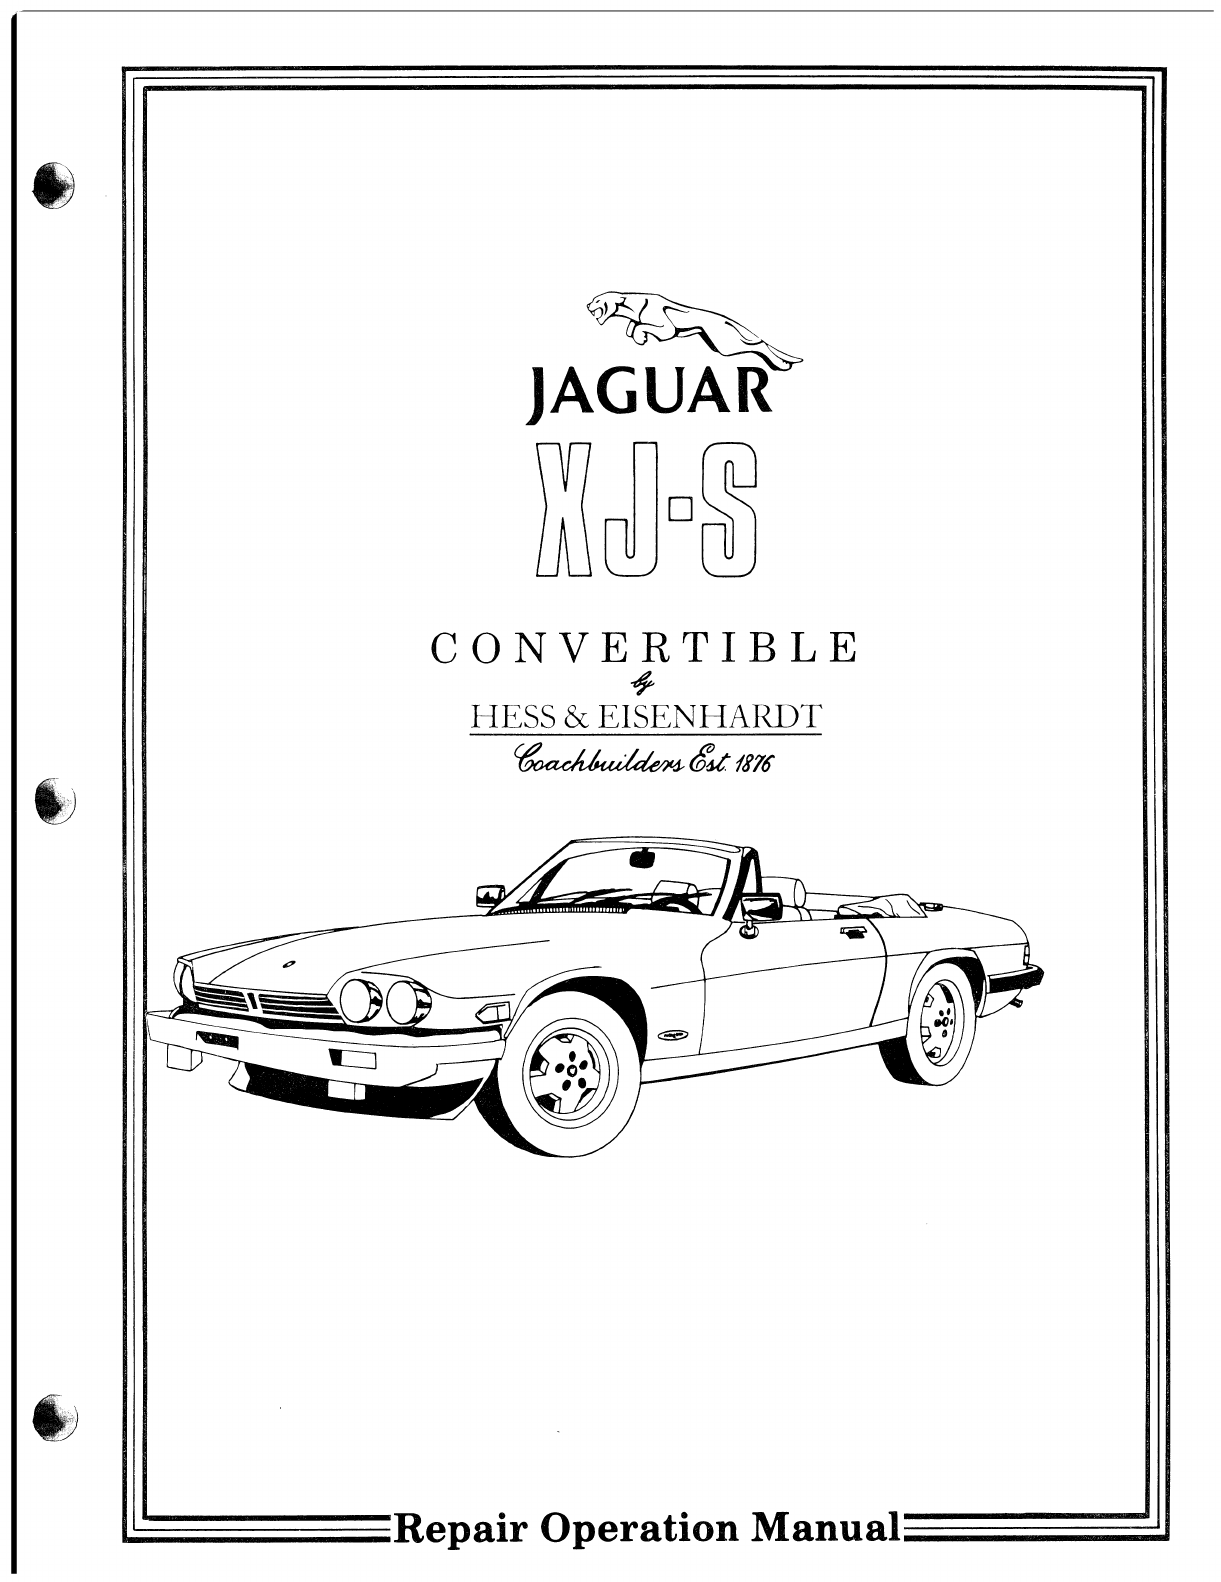 Jaguar Xjs Workshop Manual